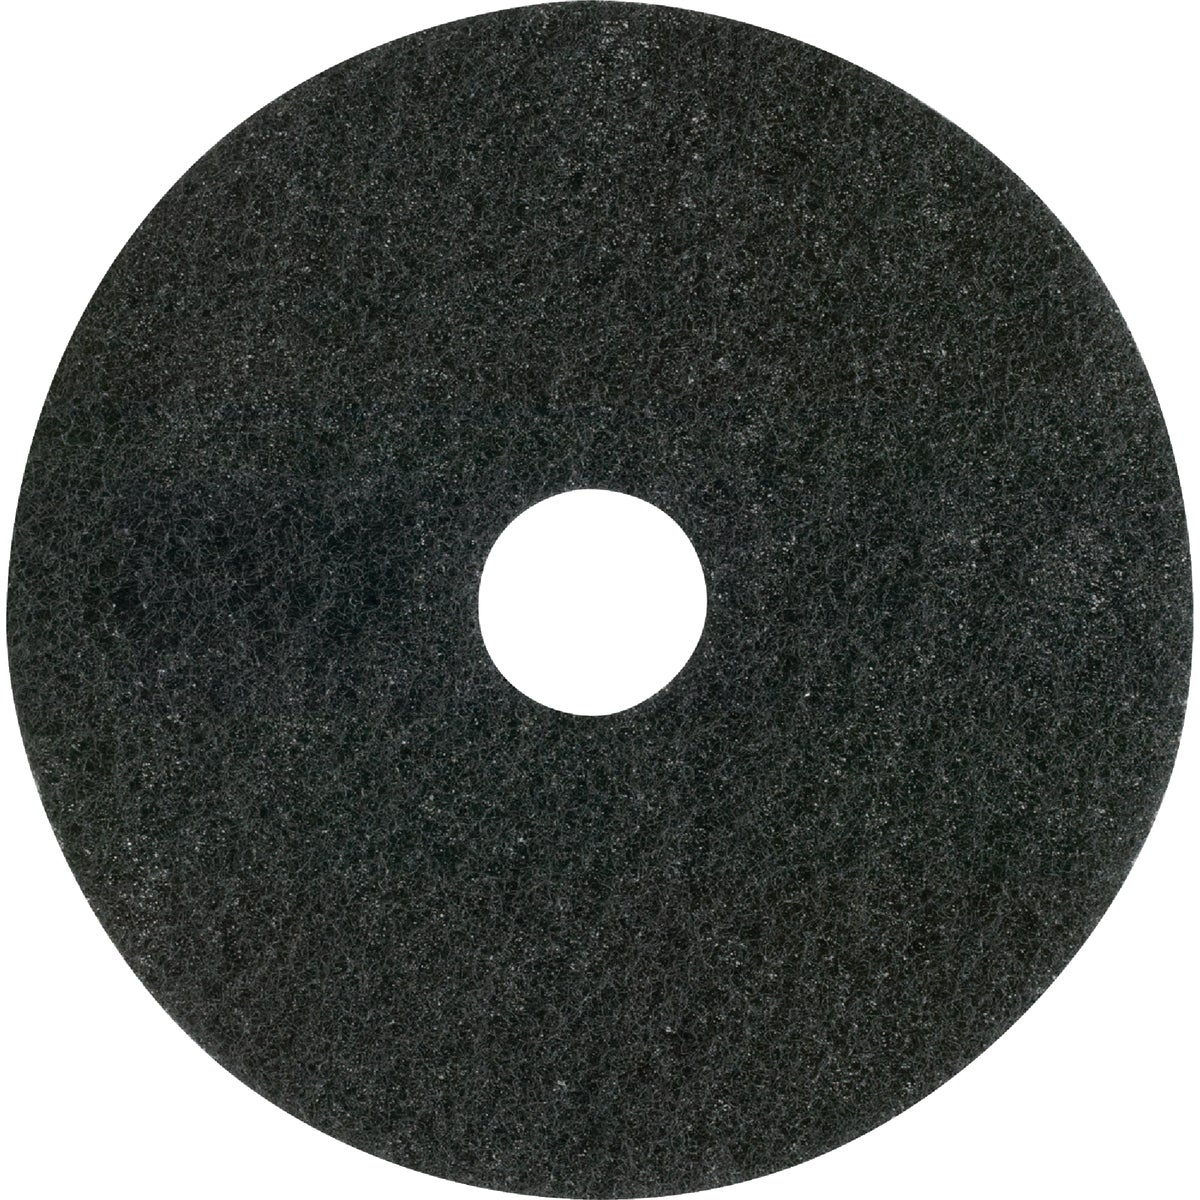 "17"" BLACK STRIPPING PAD - TKL17B by Lundmark Wax Co"